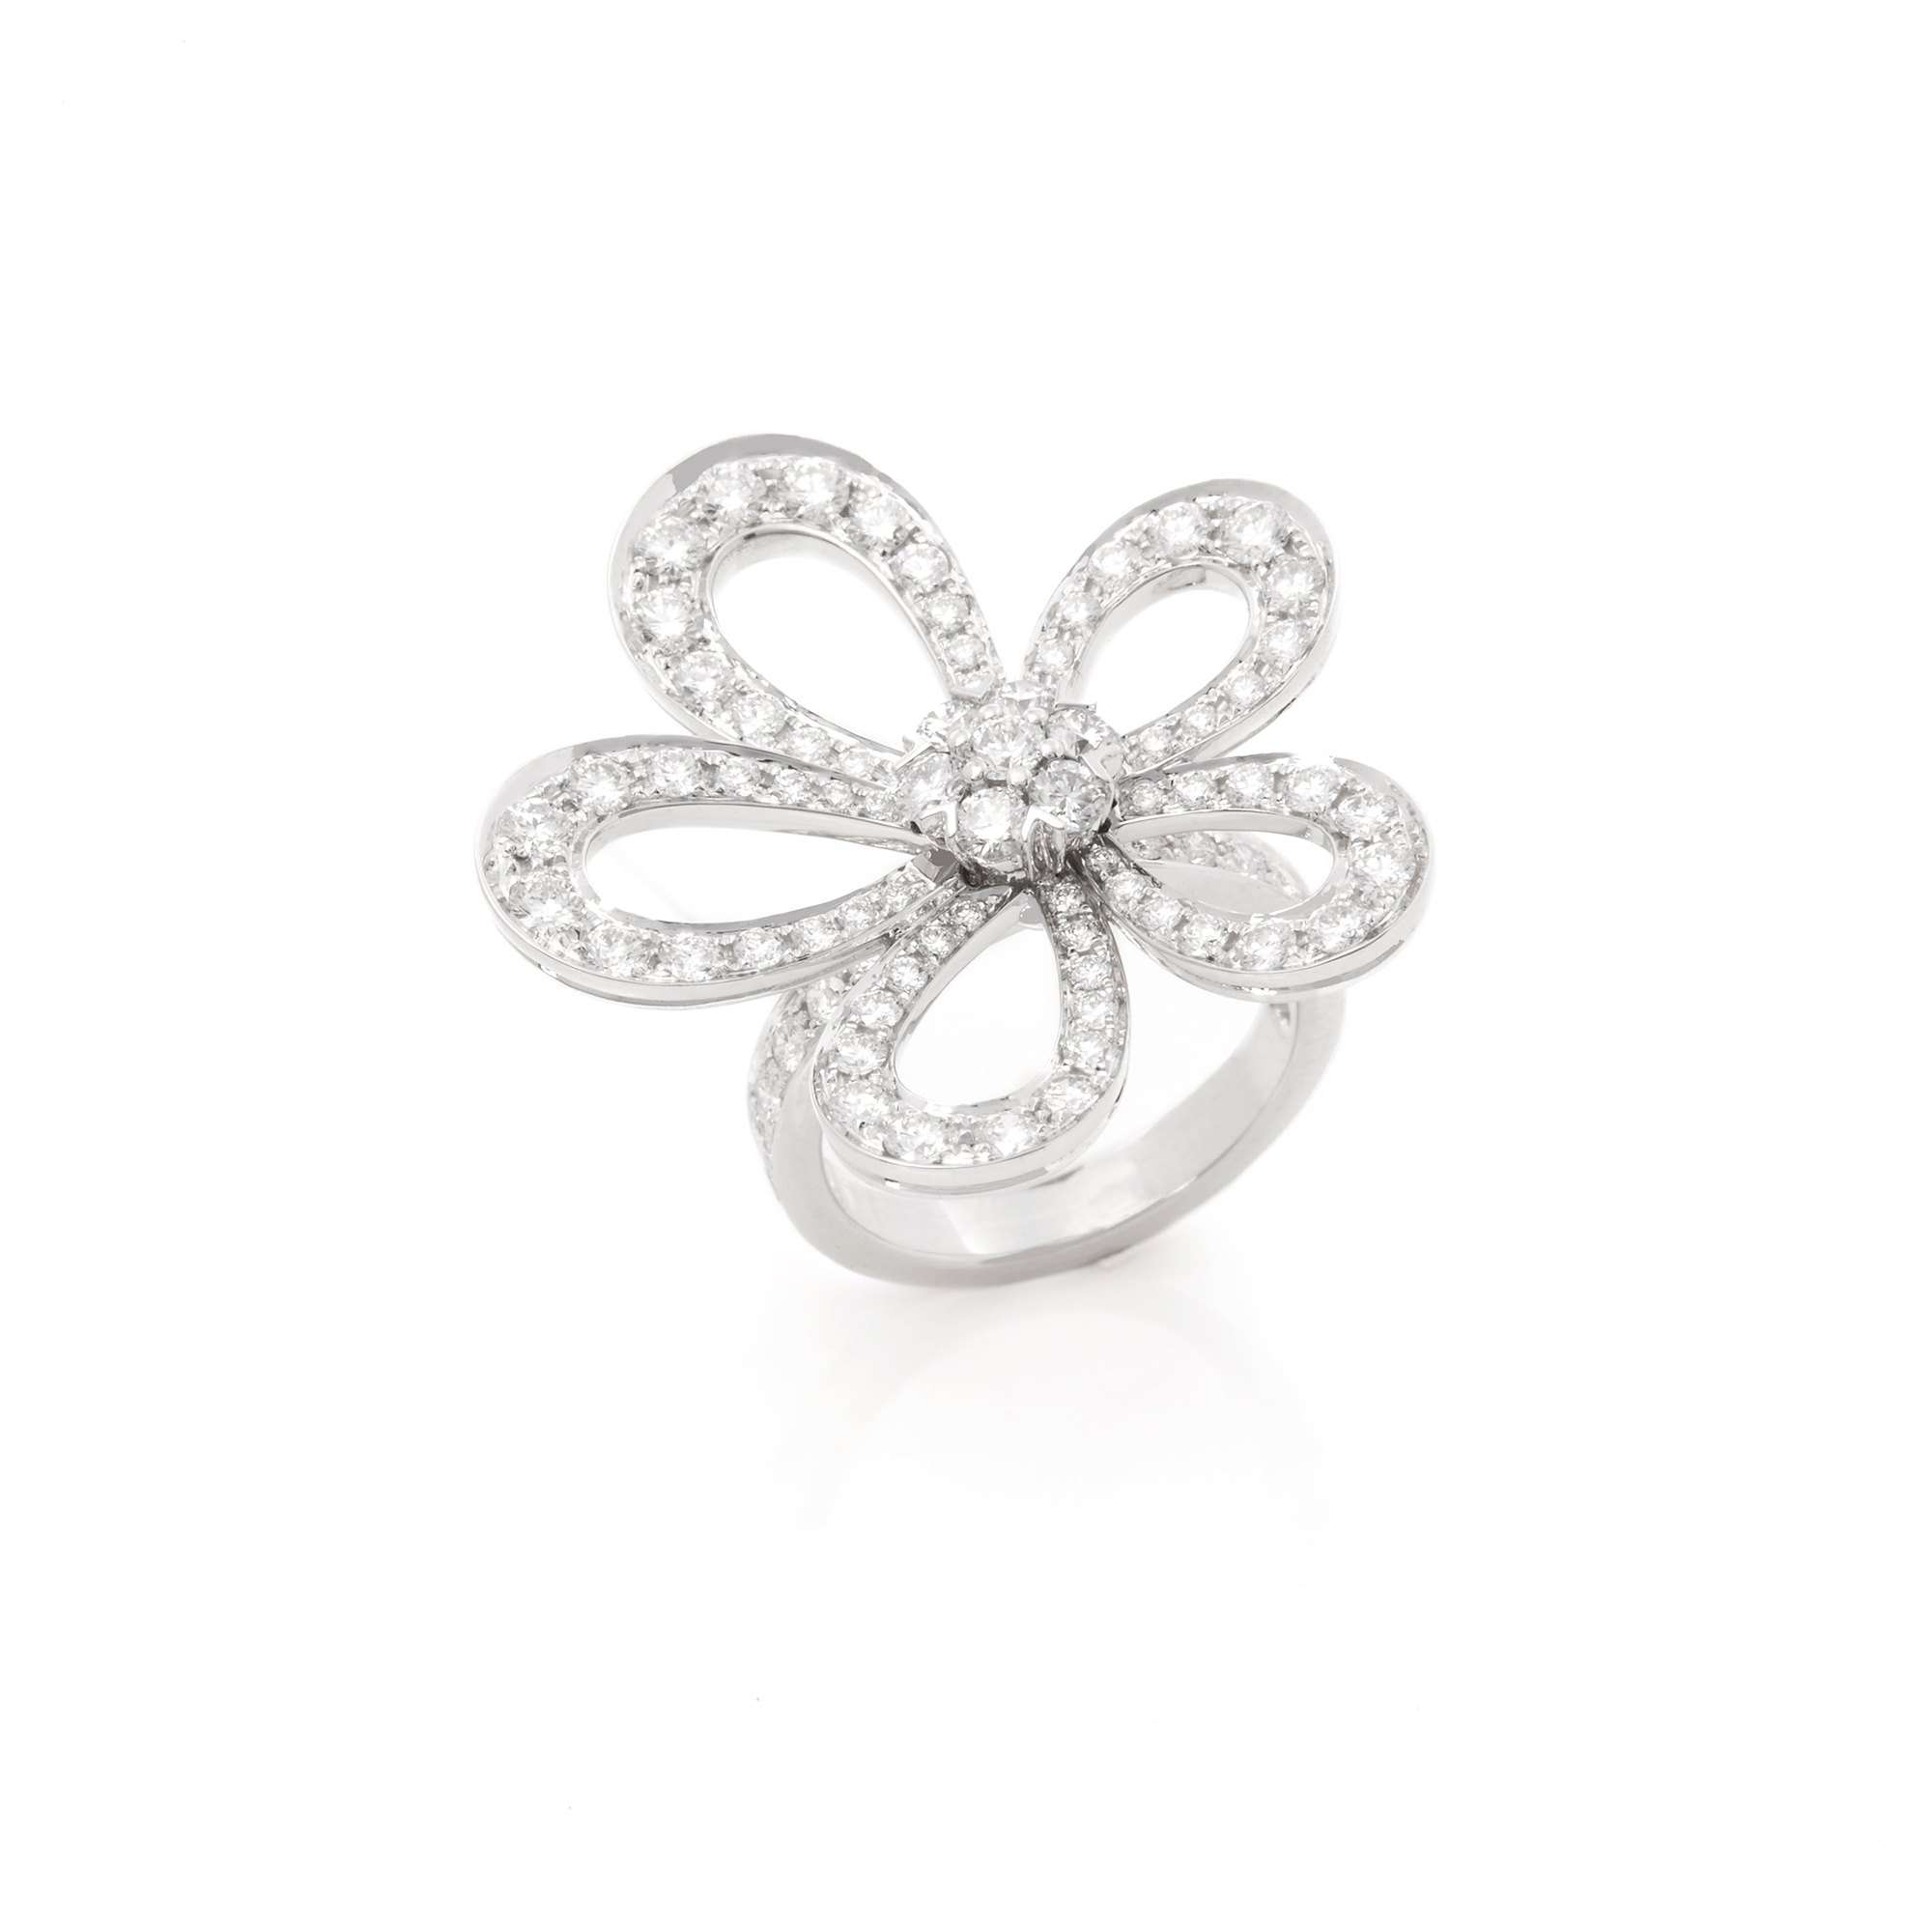 Van Cleef & Arpels 18k White Gold Diamond Flowerlace Ring